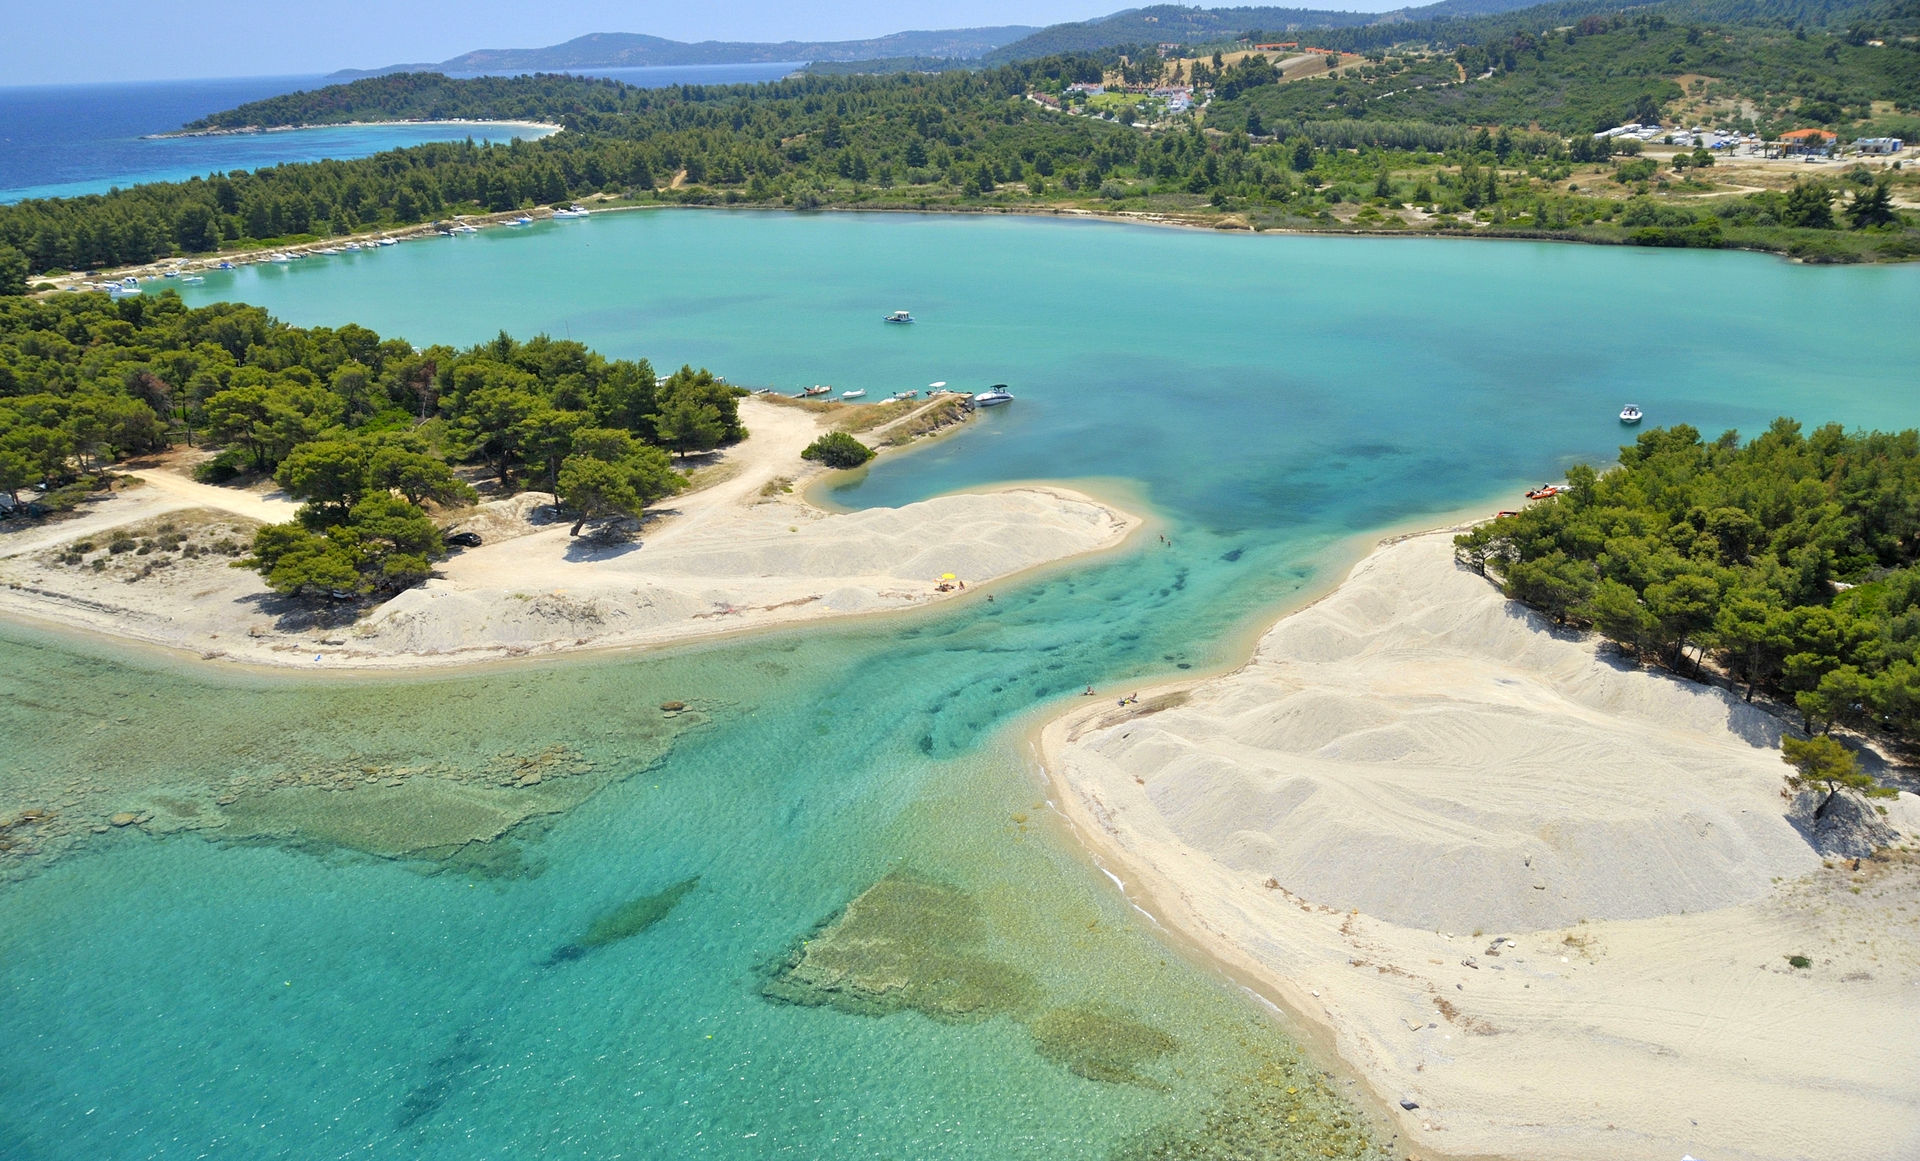 The famous Glarokavos beach in Pefkohori of Halkidiki